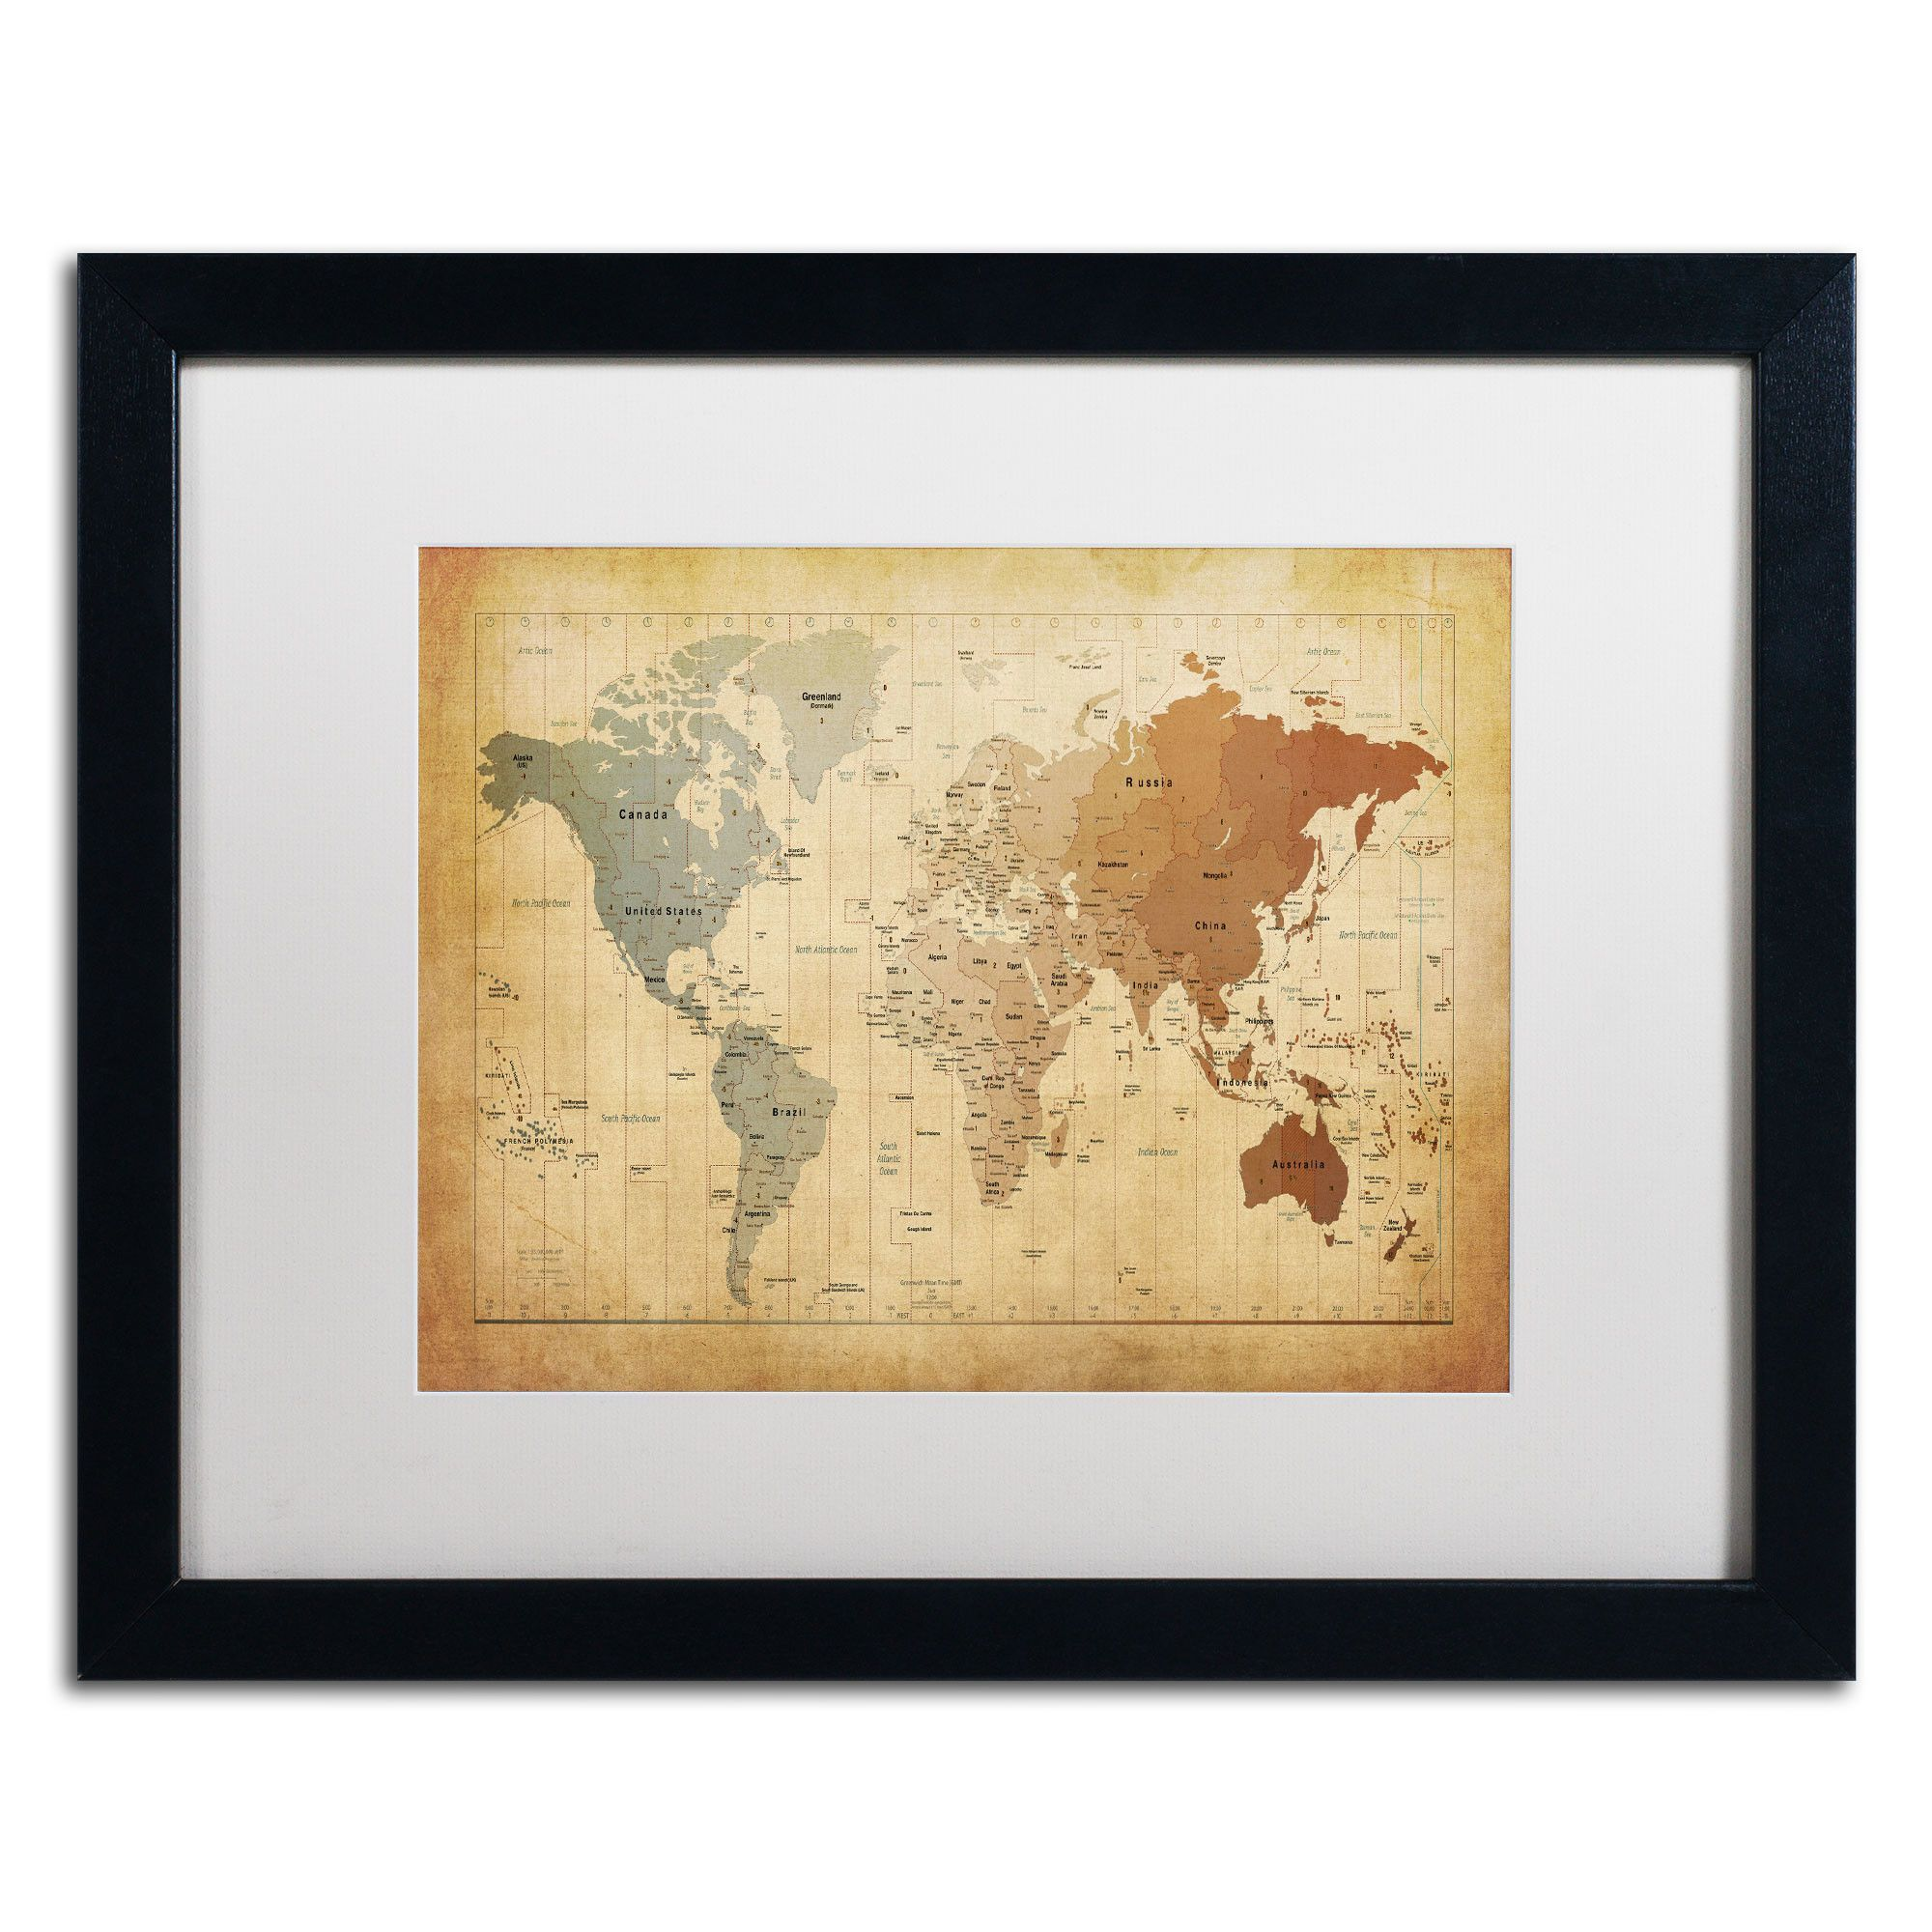 Time Zones Map of the World\' by Michael Tompsett Framed Graphic Art ...